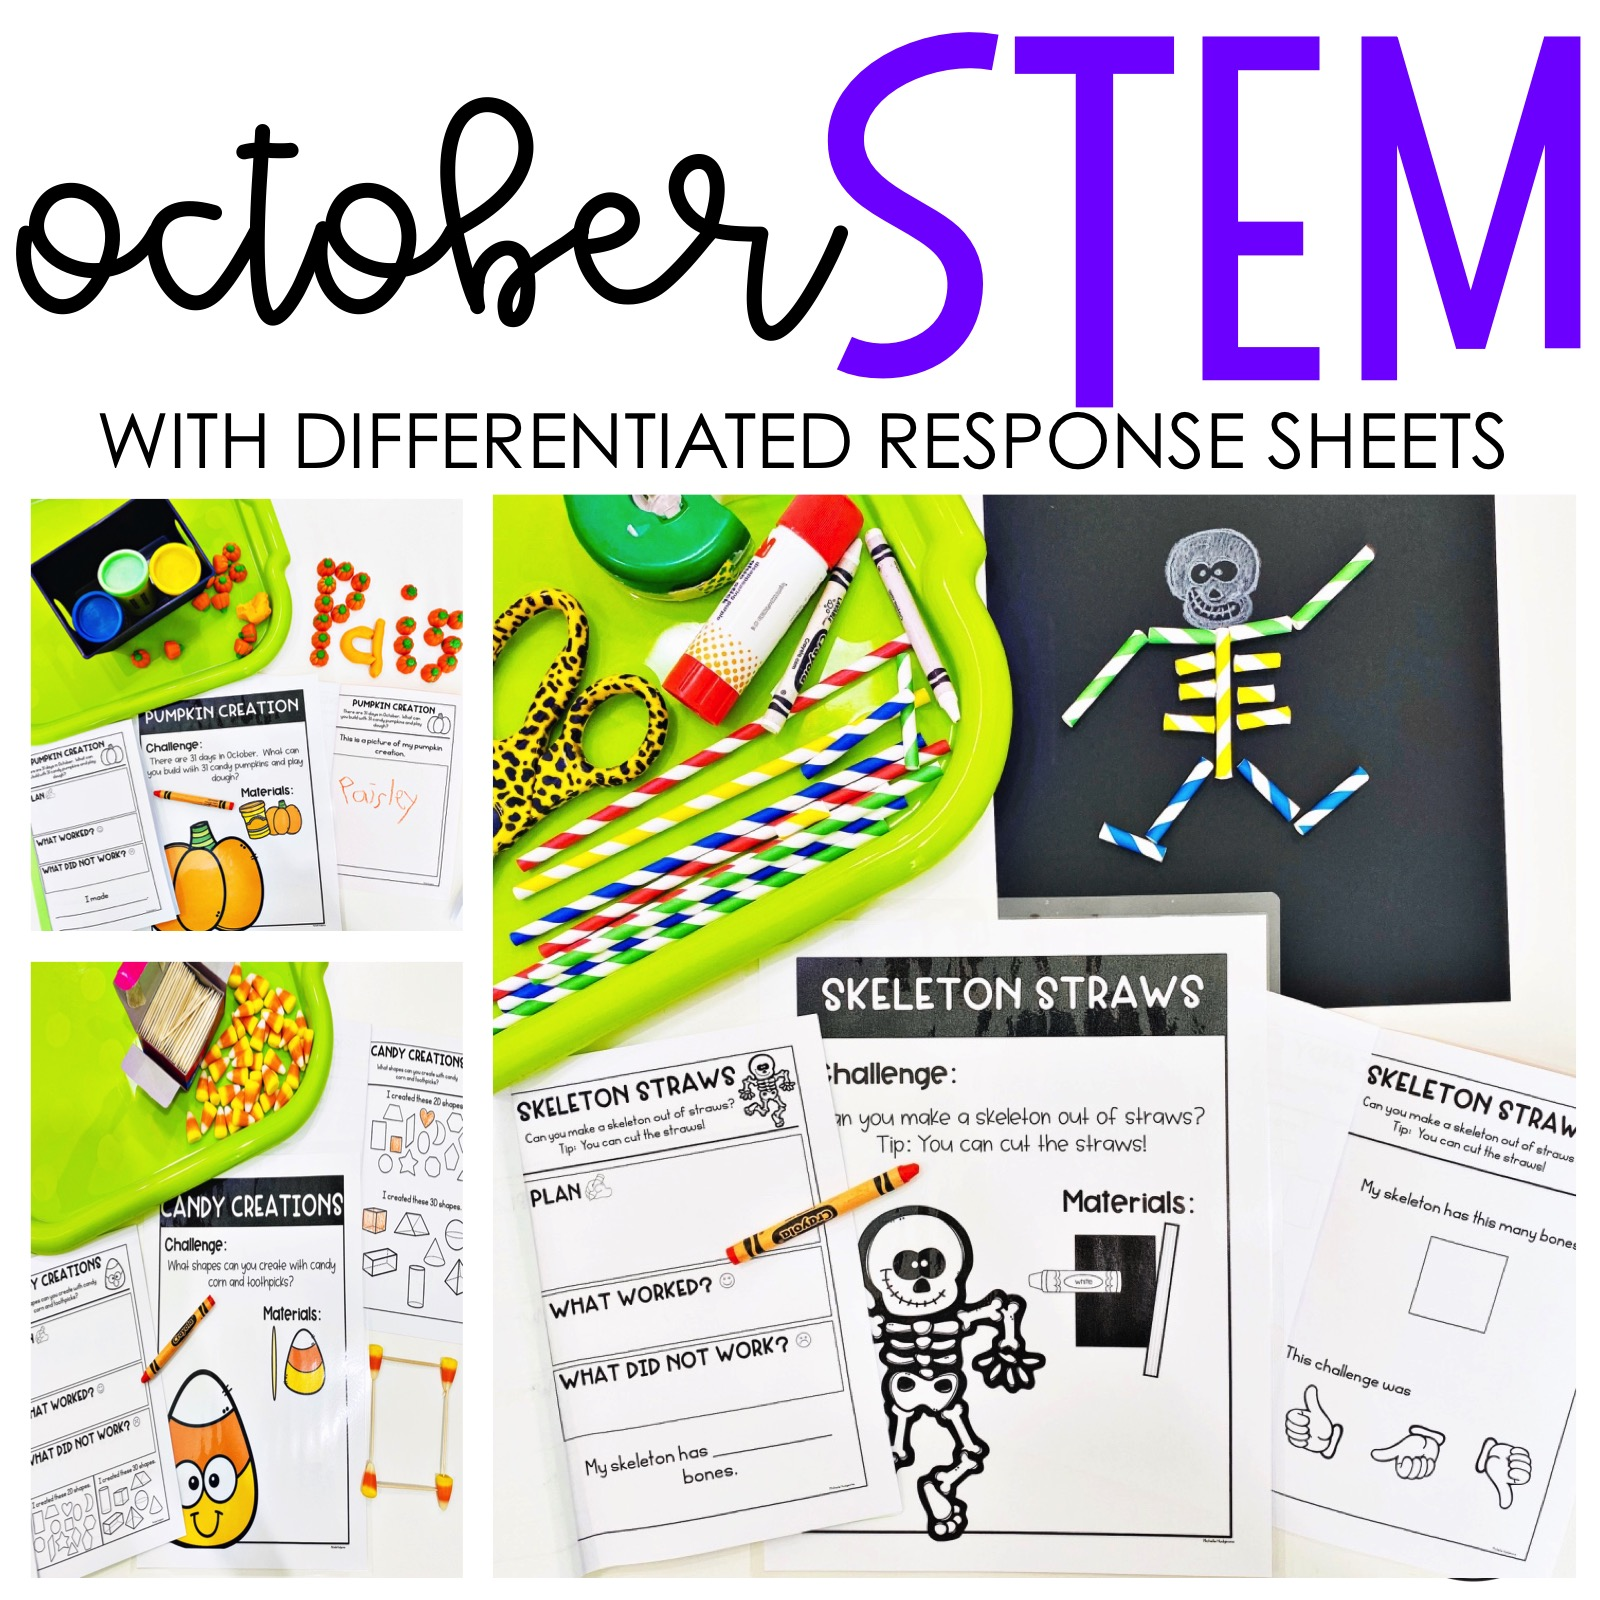 October Halloween Stem Activities With Differentiated